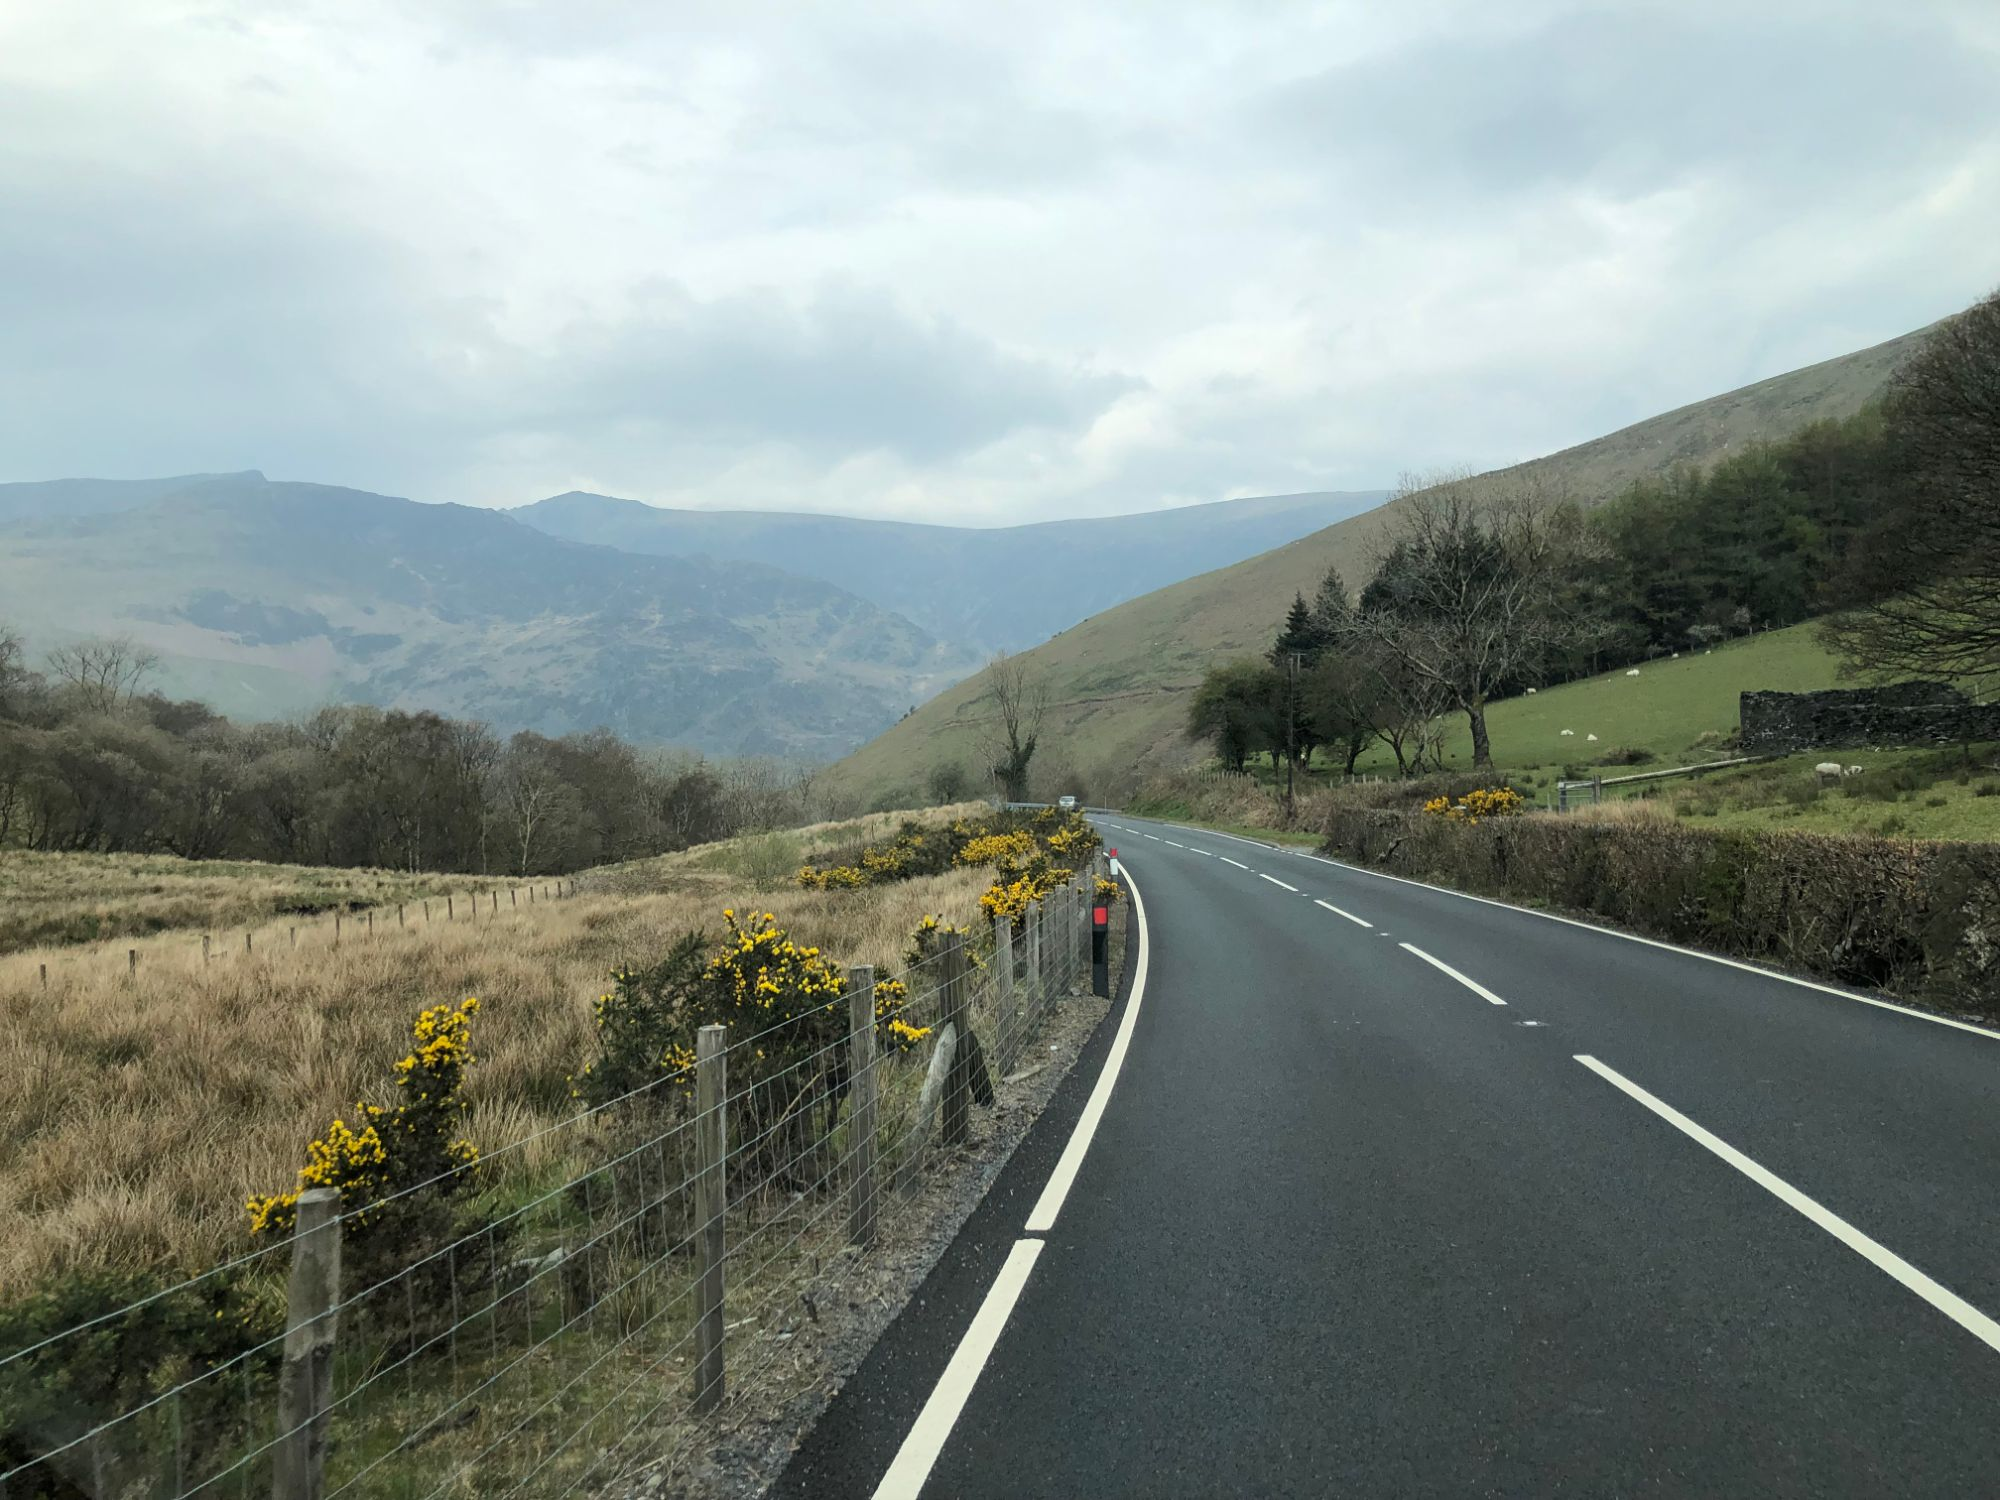 Free stock photo road trip country mountain roads Wales